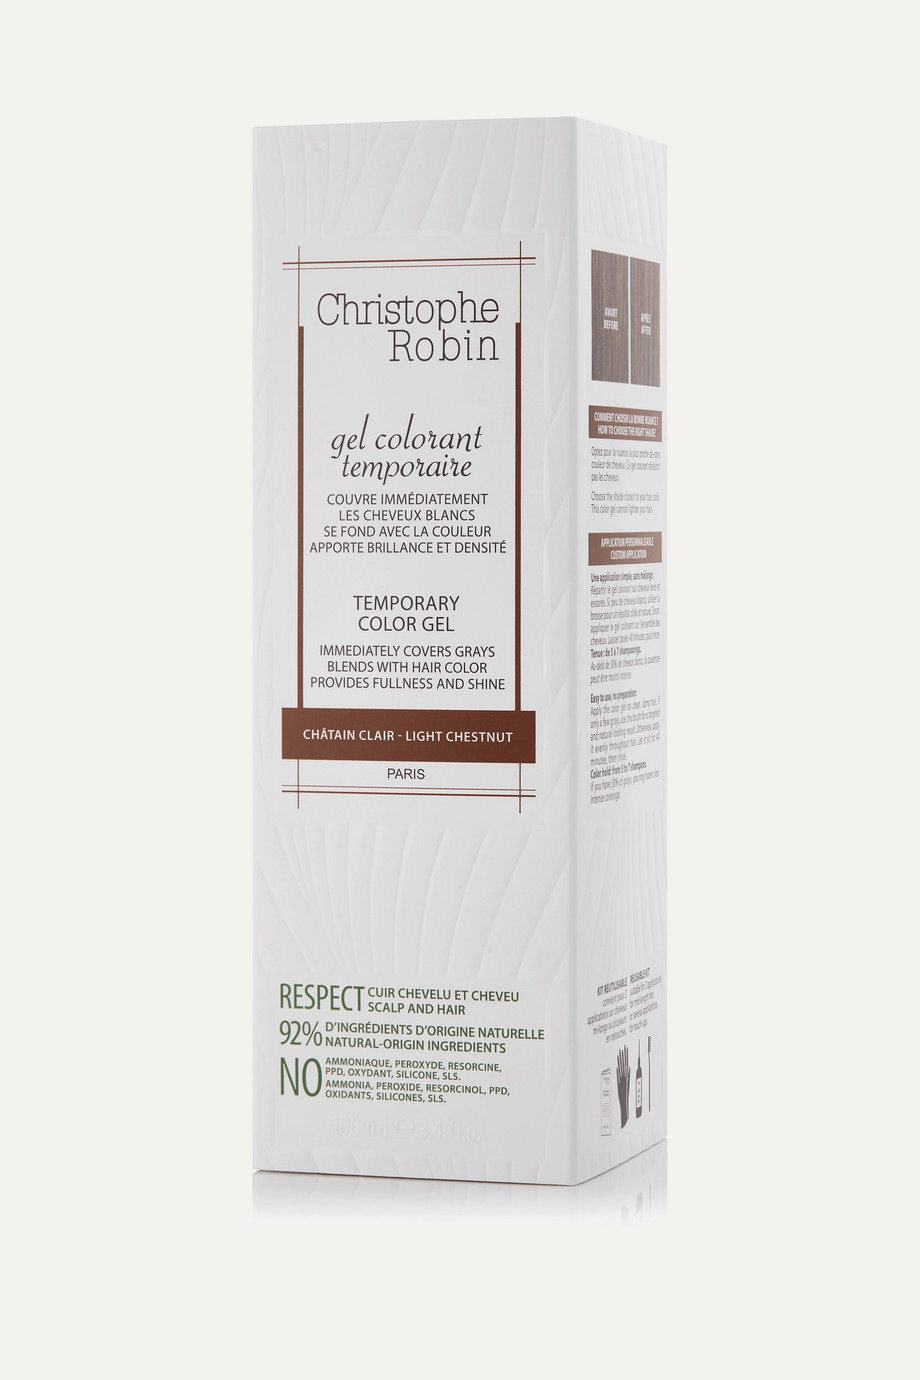 CHRISTOPHE ROBIN Temporary Color Gel Light Chestnut, 100ml